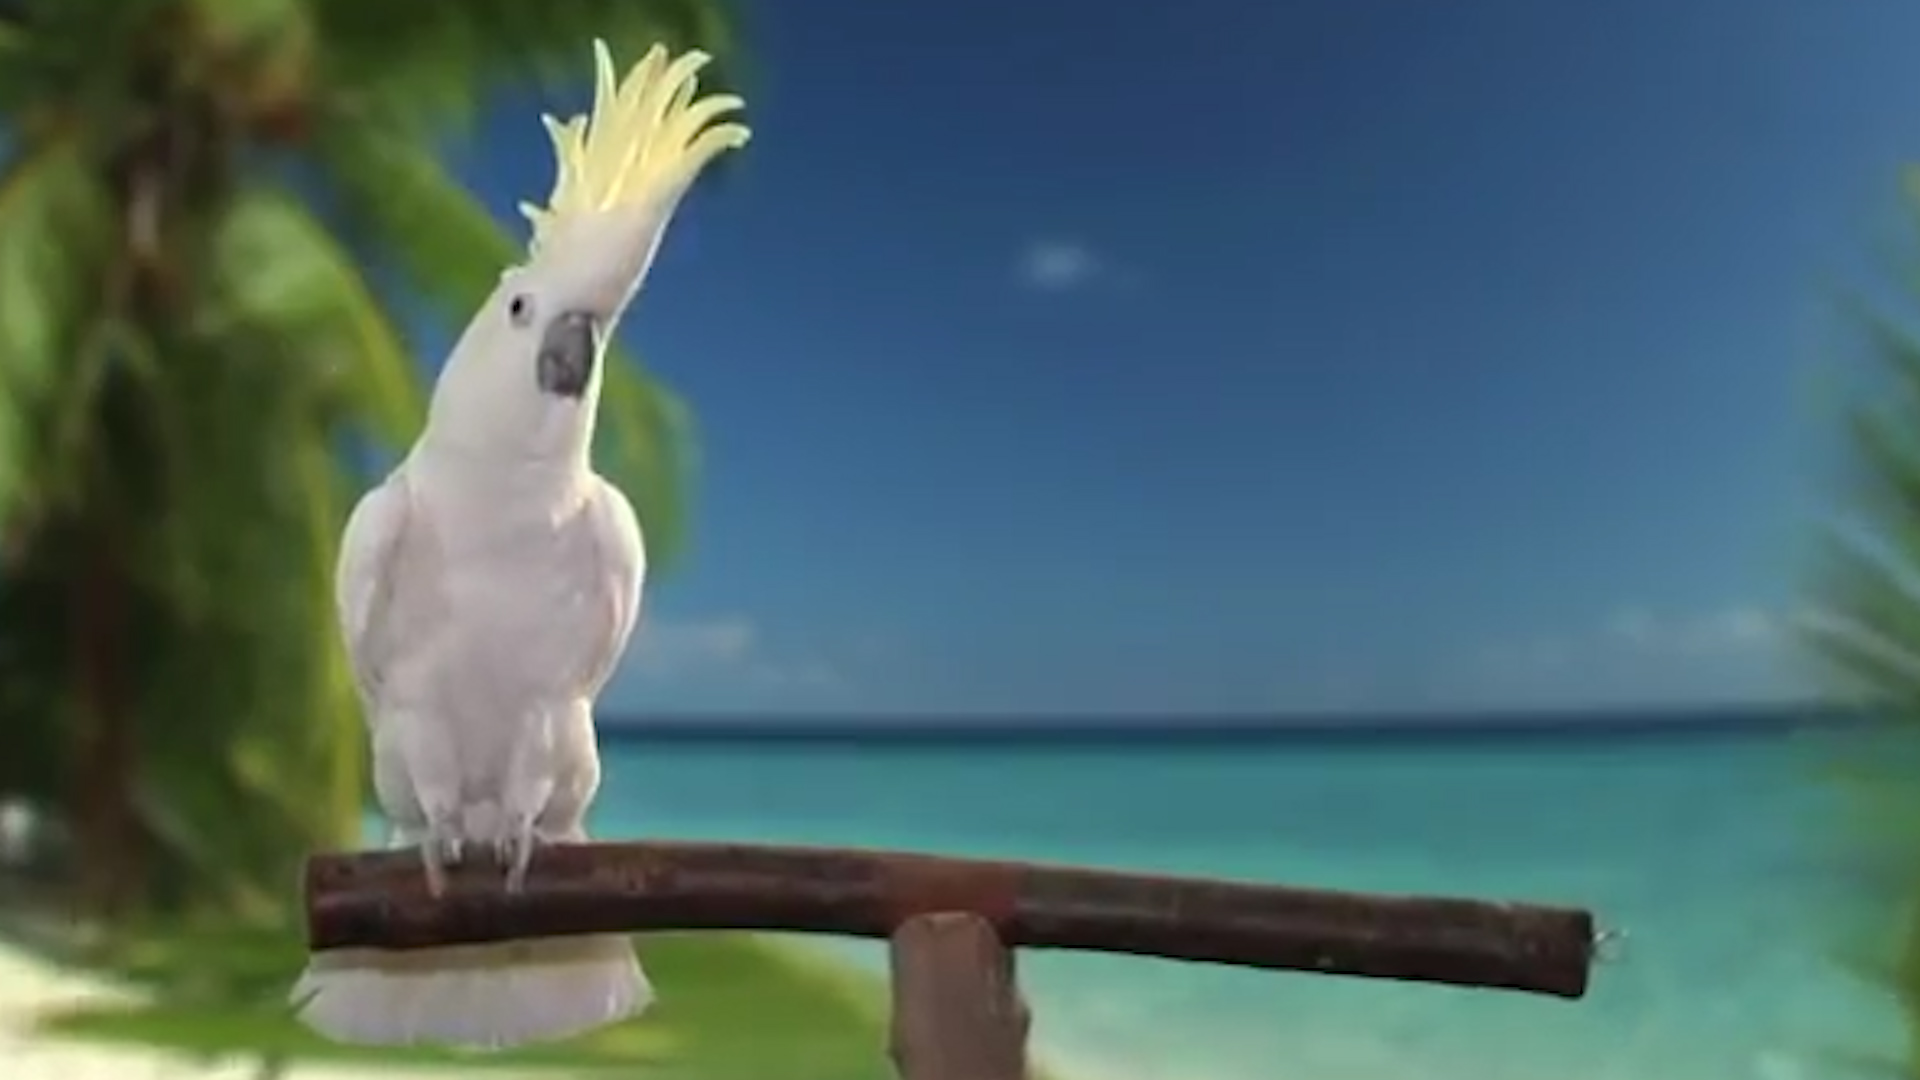 Snowball the cockatoo taught himself 14 dance moves, scientists say